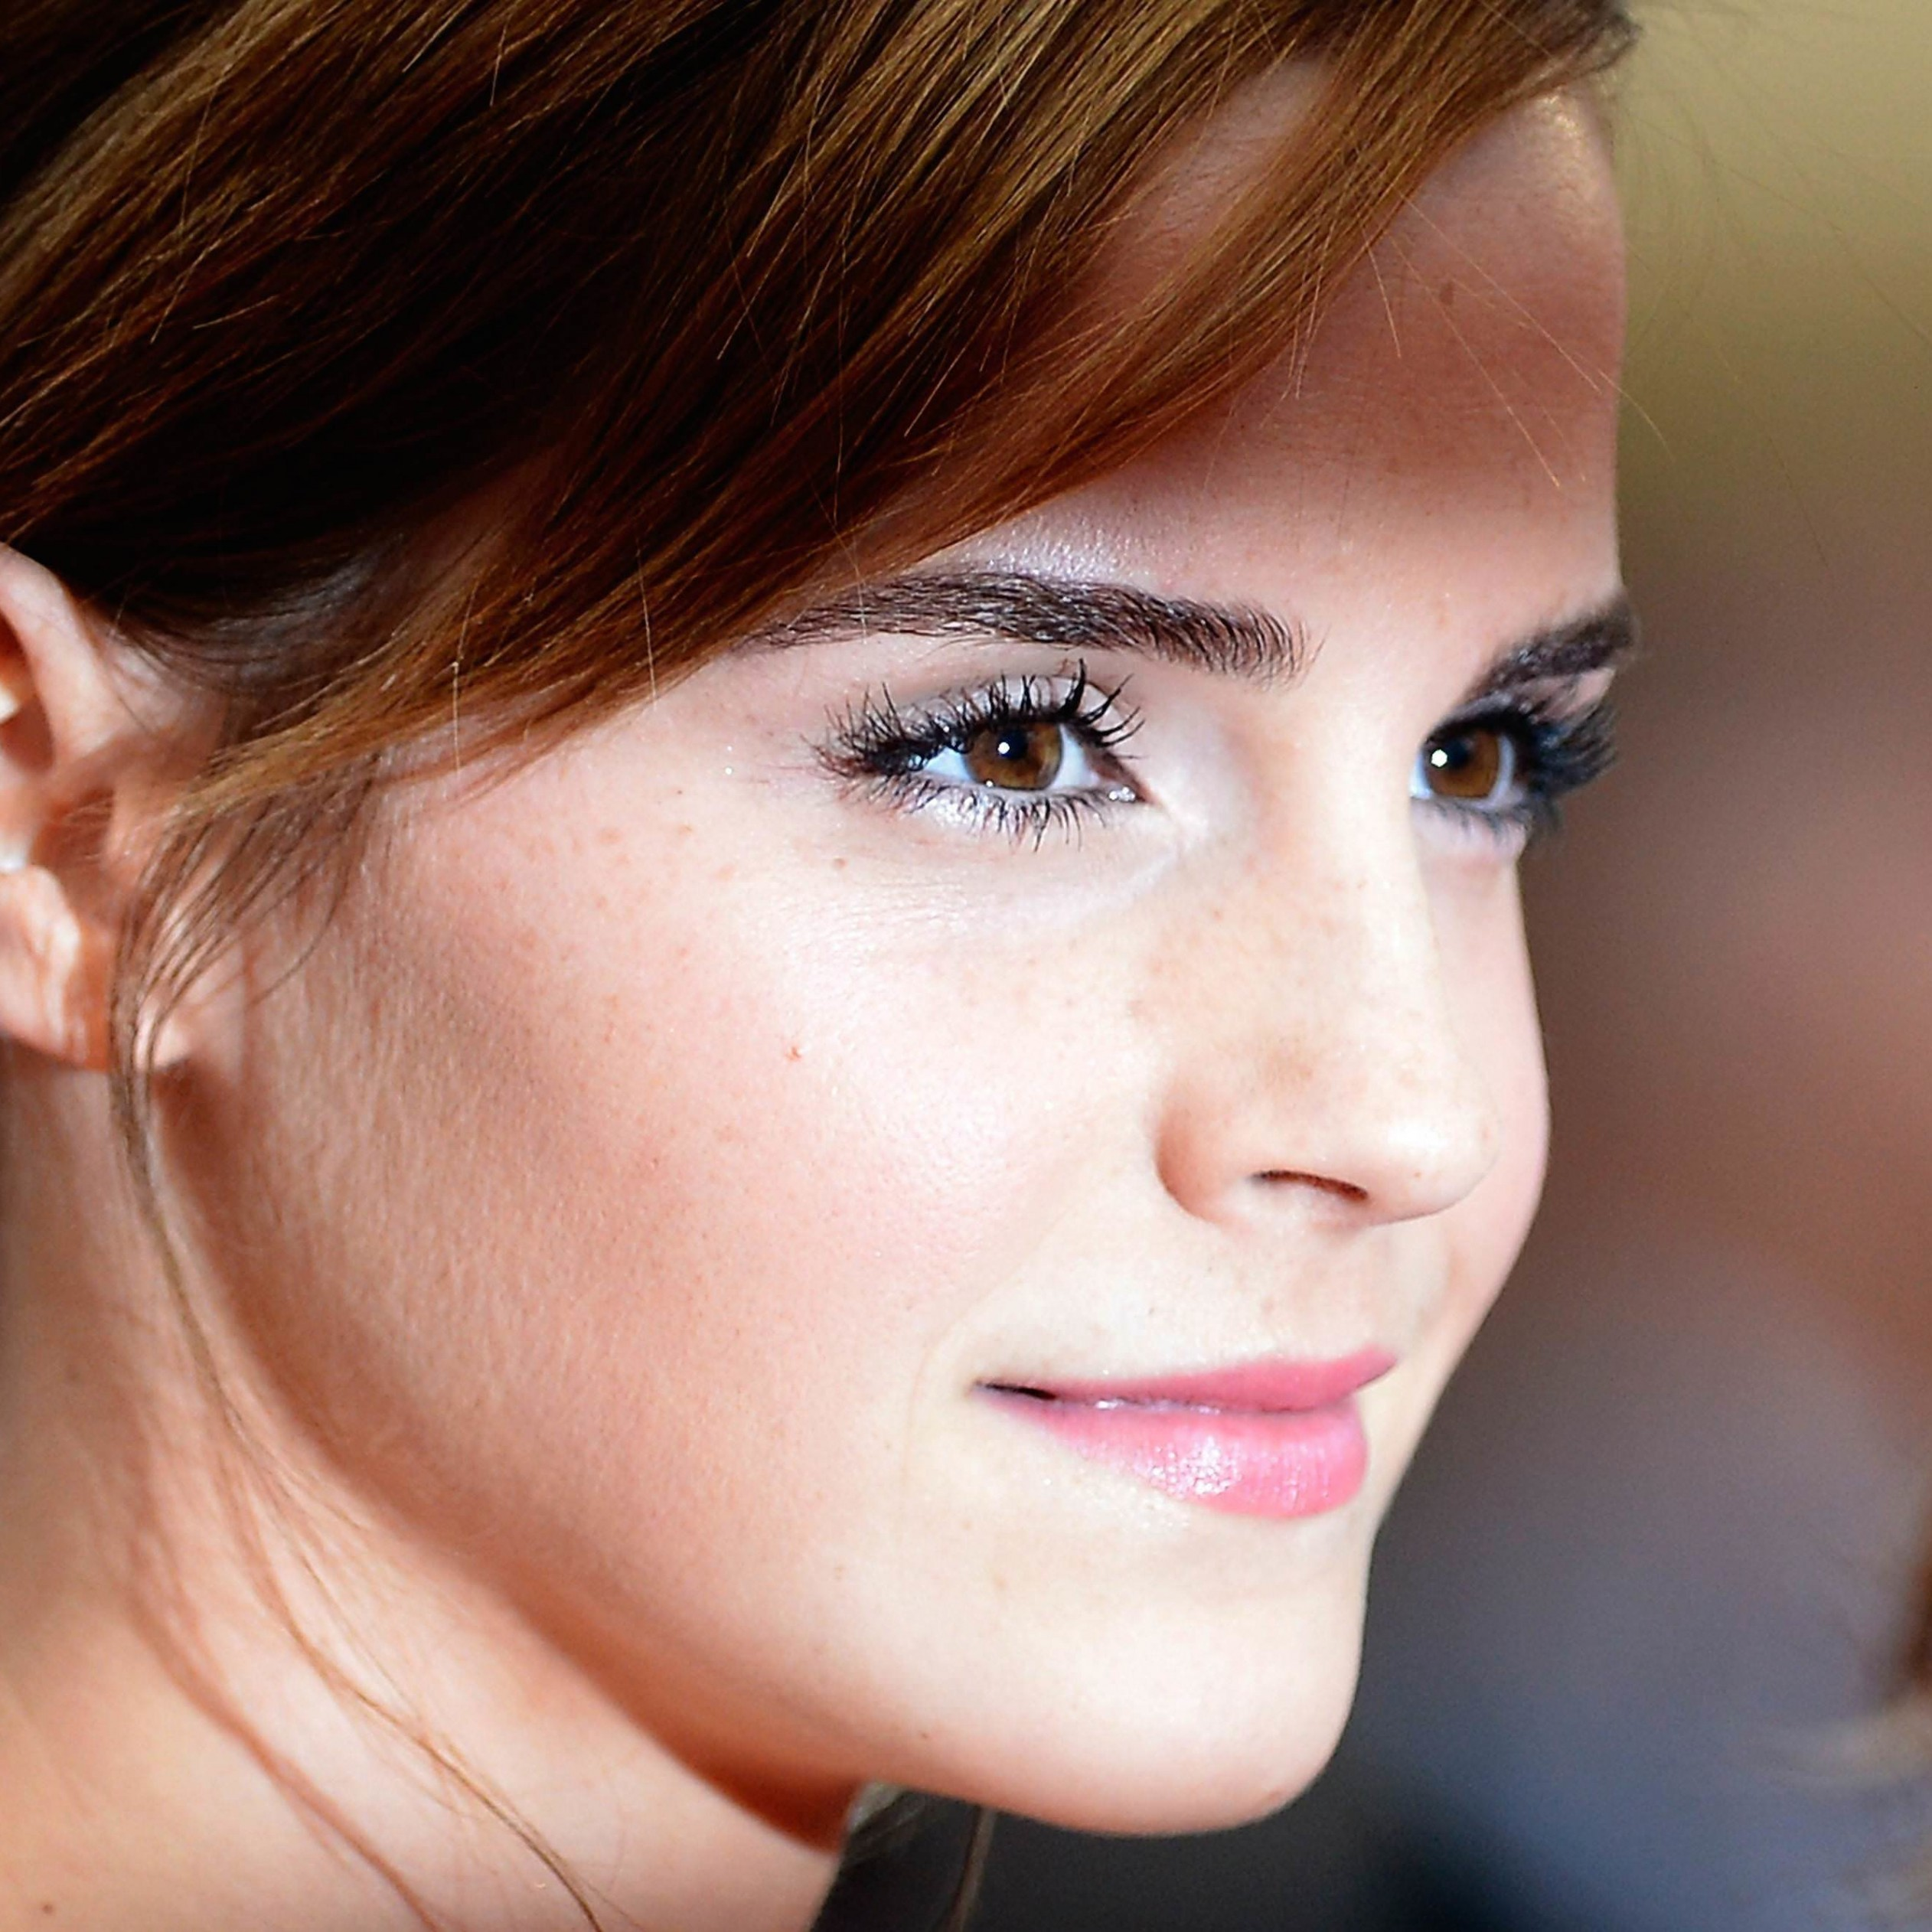 Emma Watson Wallpaper for Apple iPad mini 2